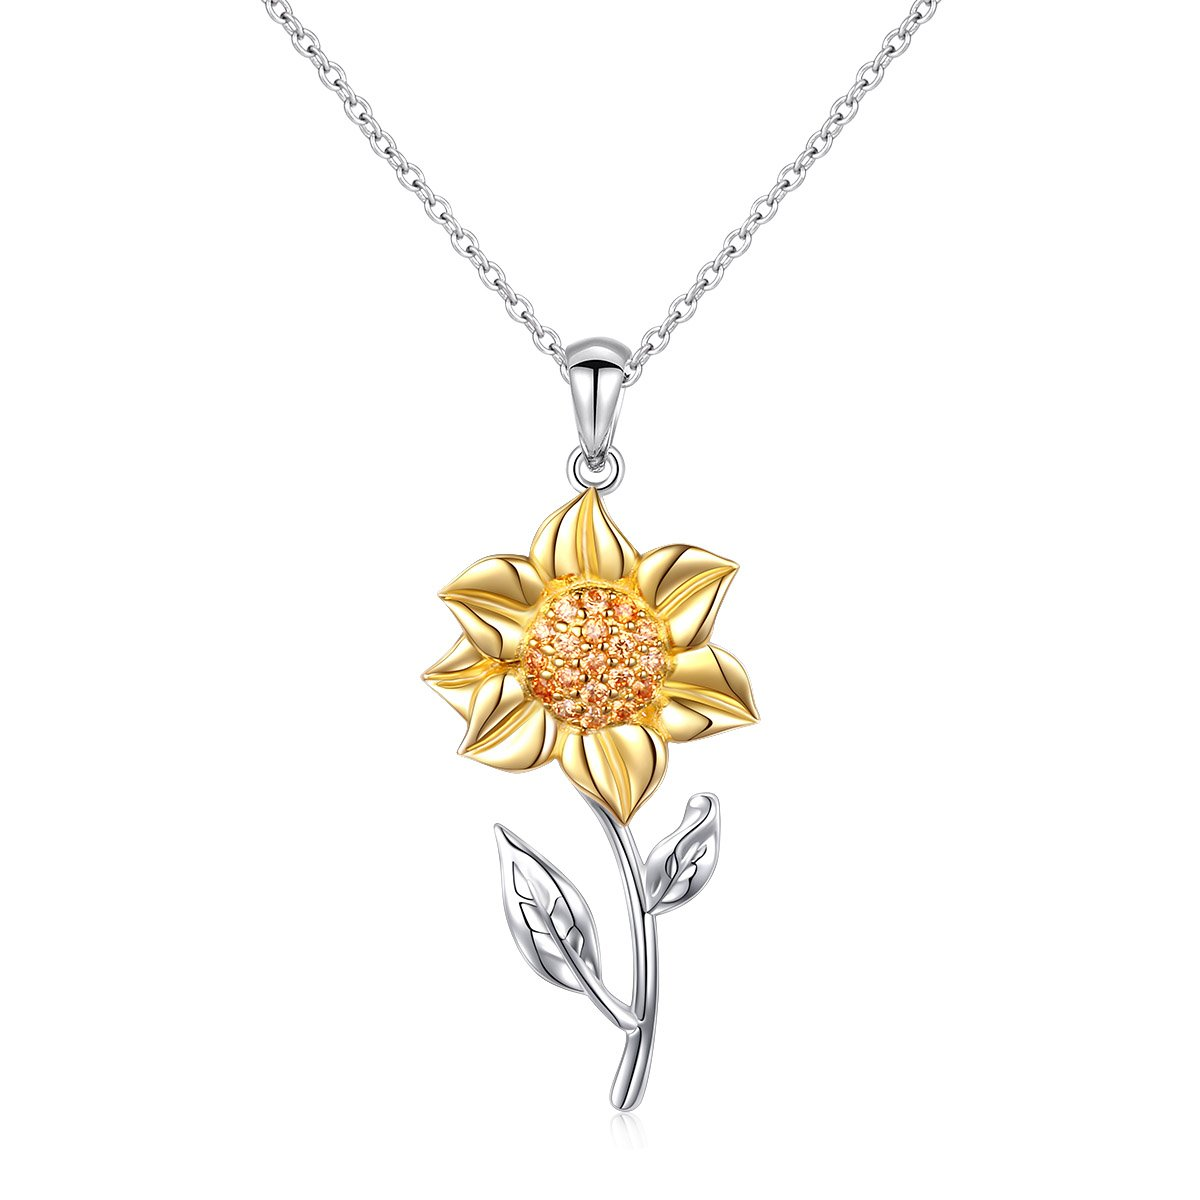 S925 Sterling Silver Sunflower with CZ Pendant Necklace Ring Earrings Bracelet Jewelry Set for Women 18''